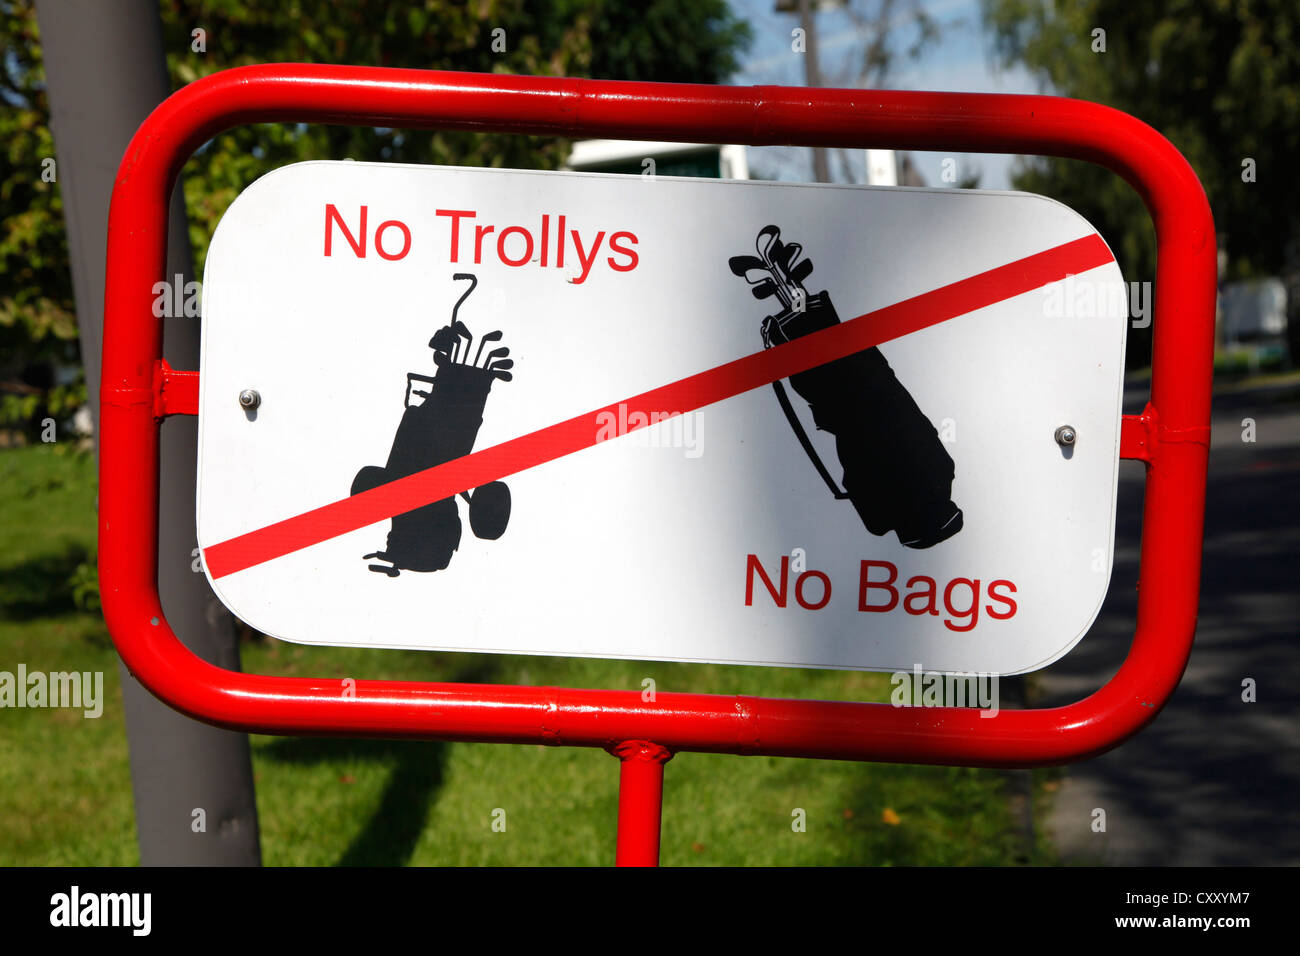 Signpost on a golf course. No trolleys, no bags. - Stock Image